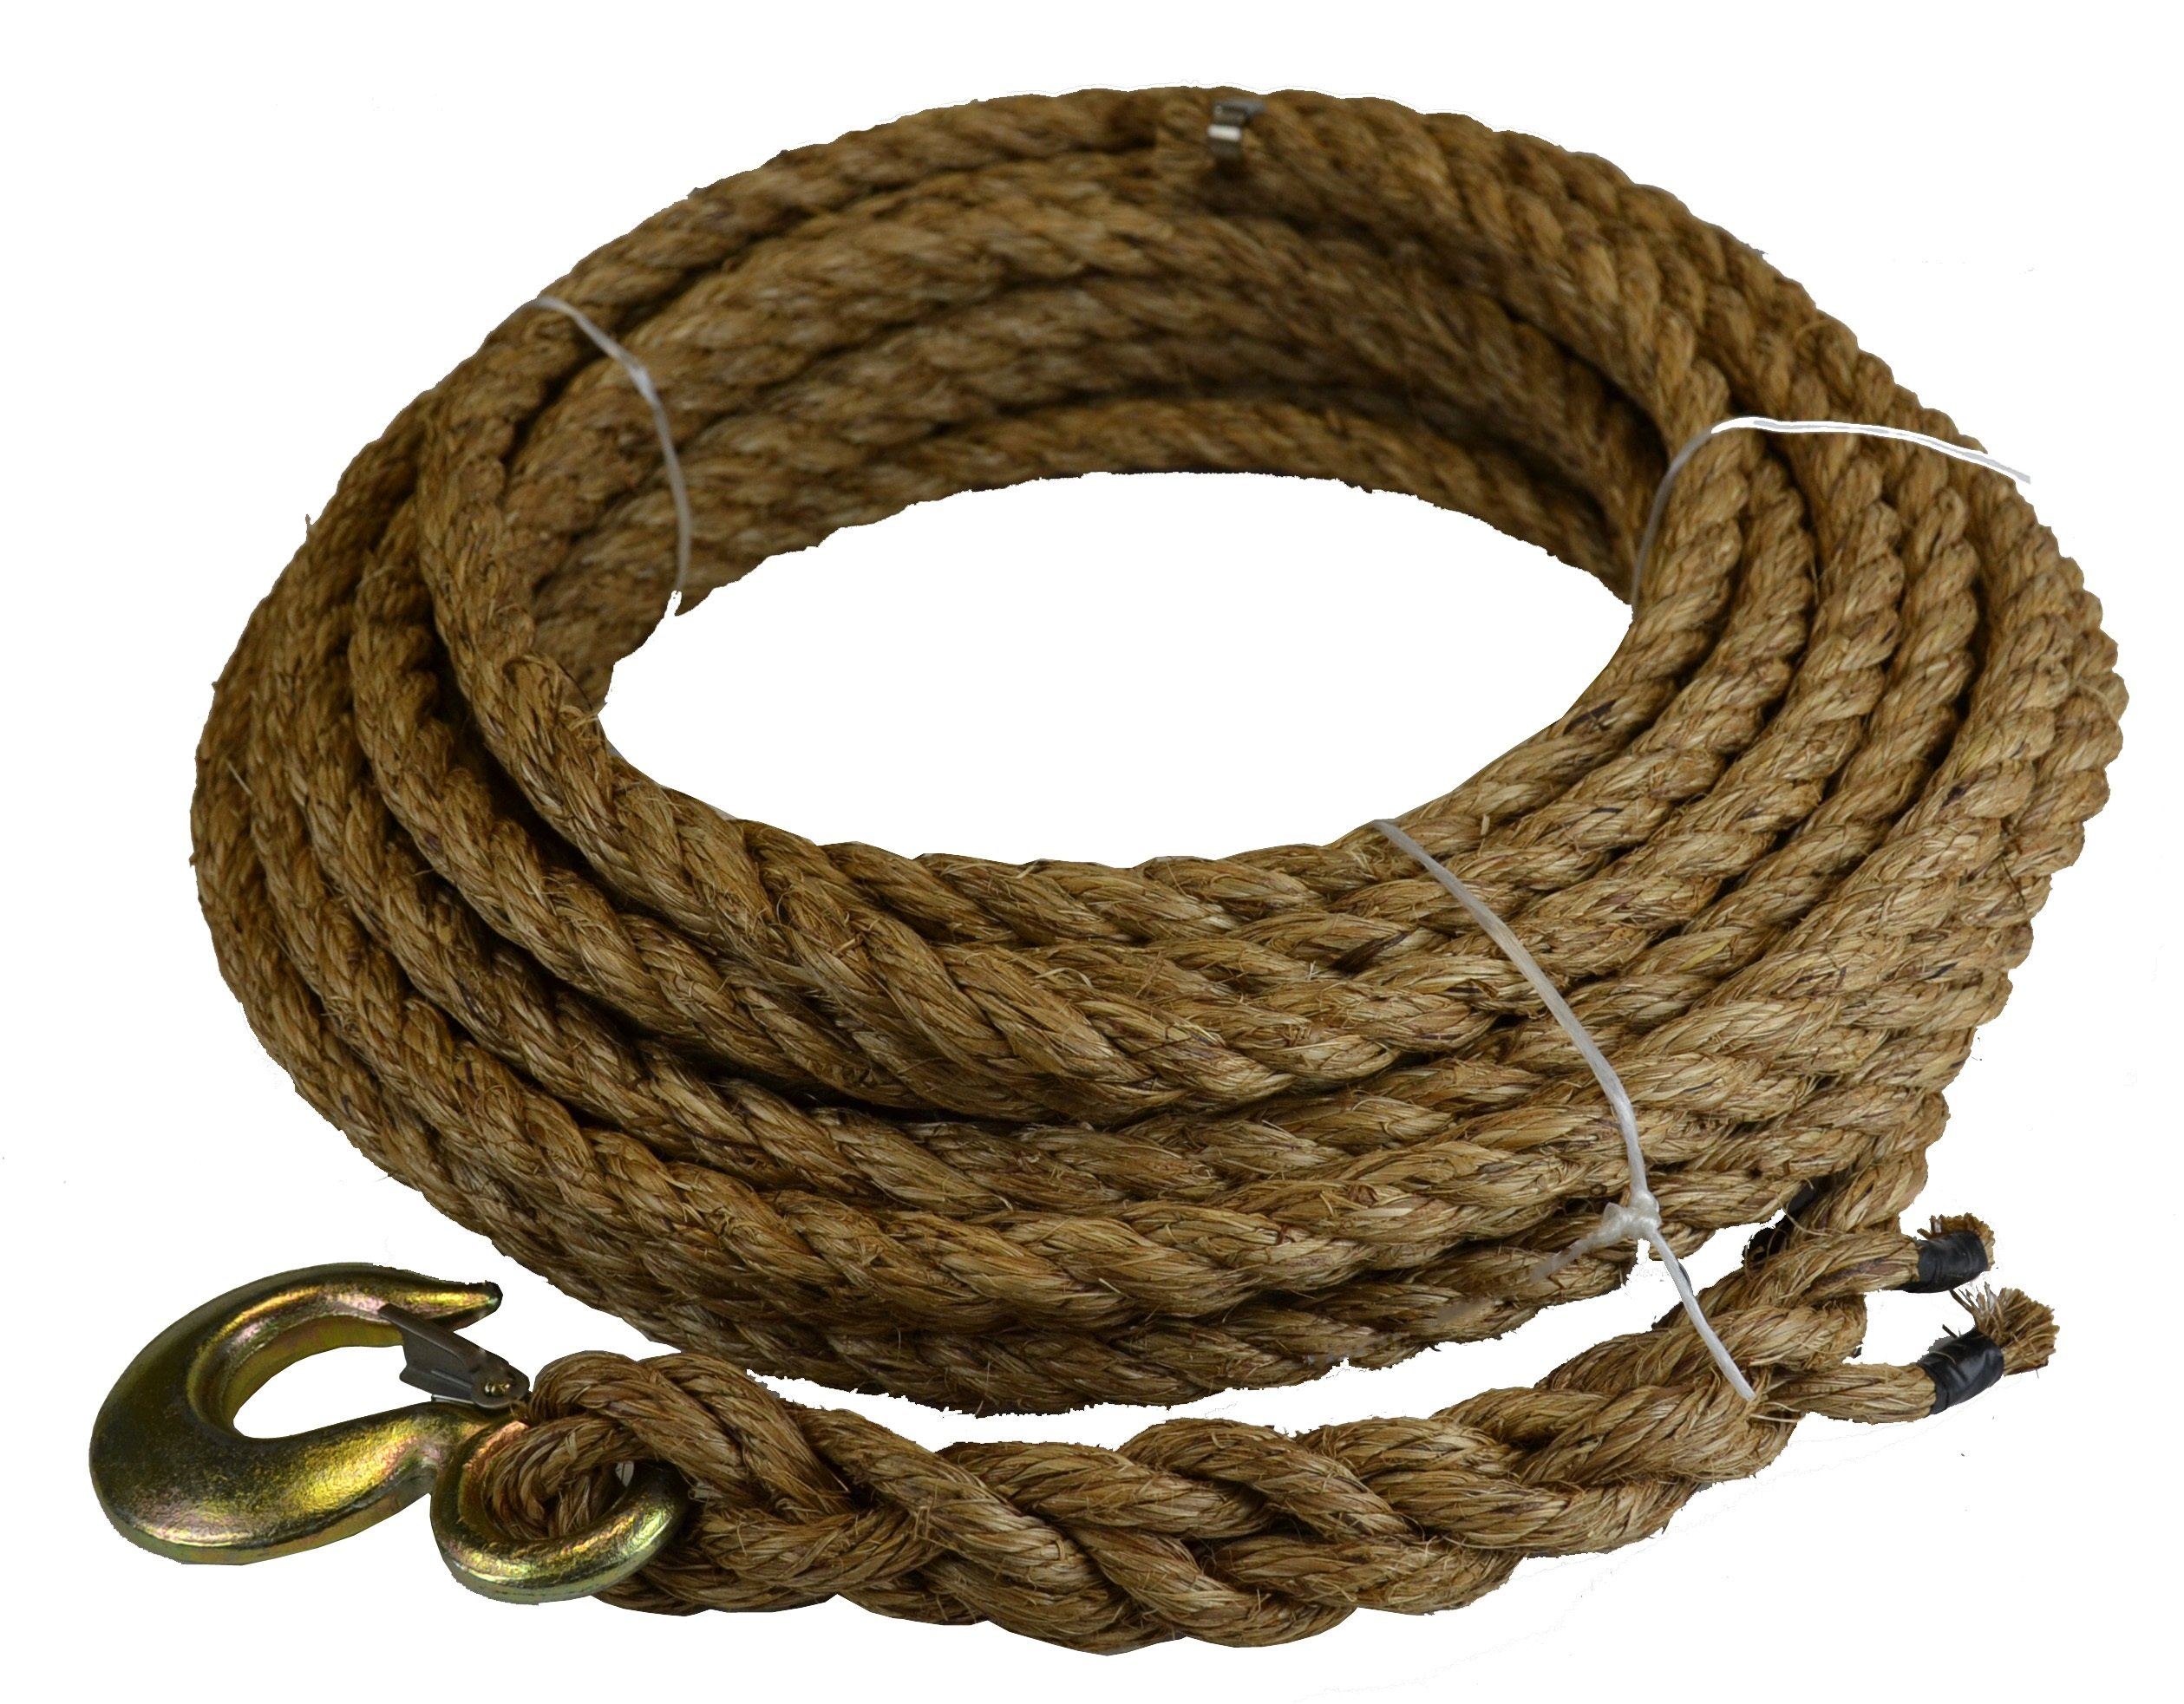 60 Pull Rope With Snap Roofmaster